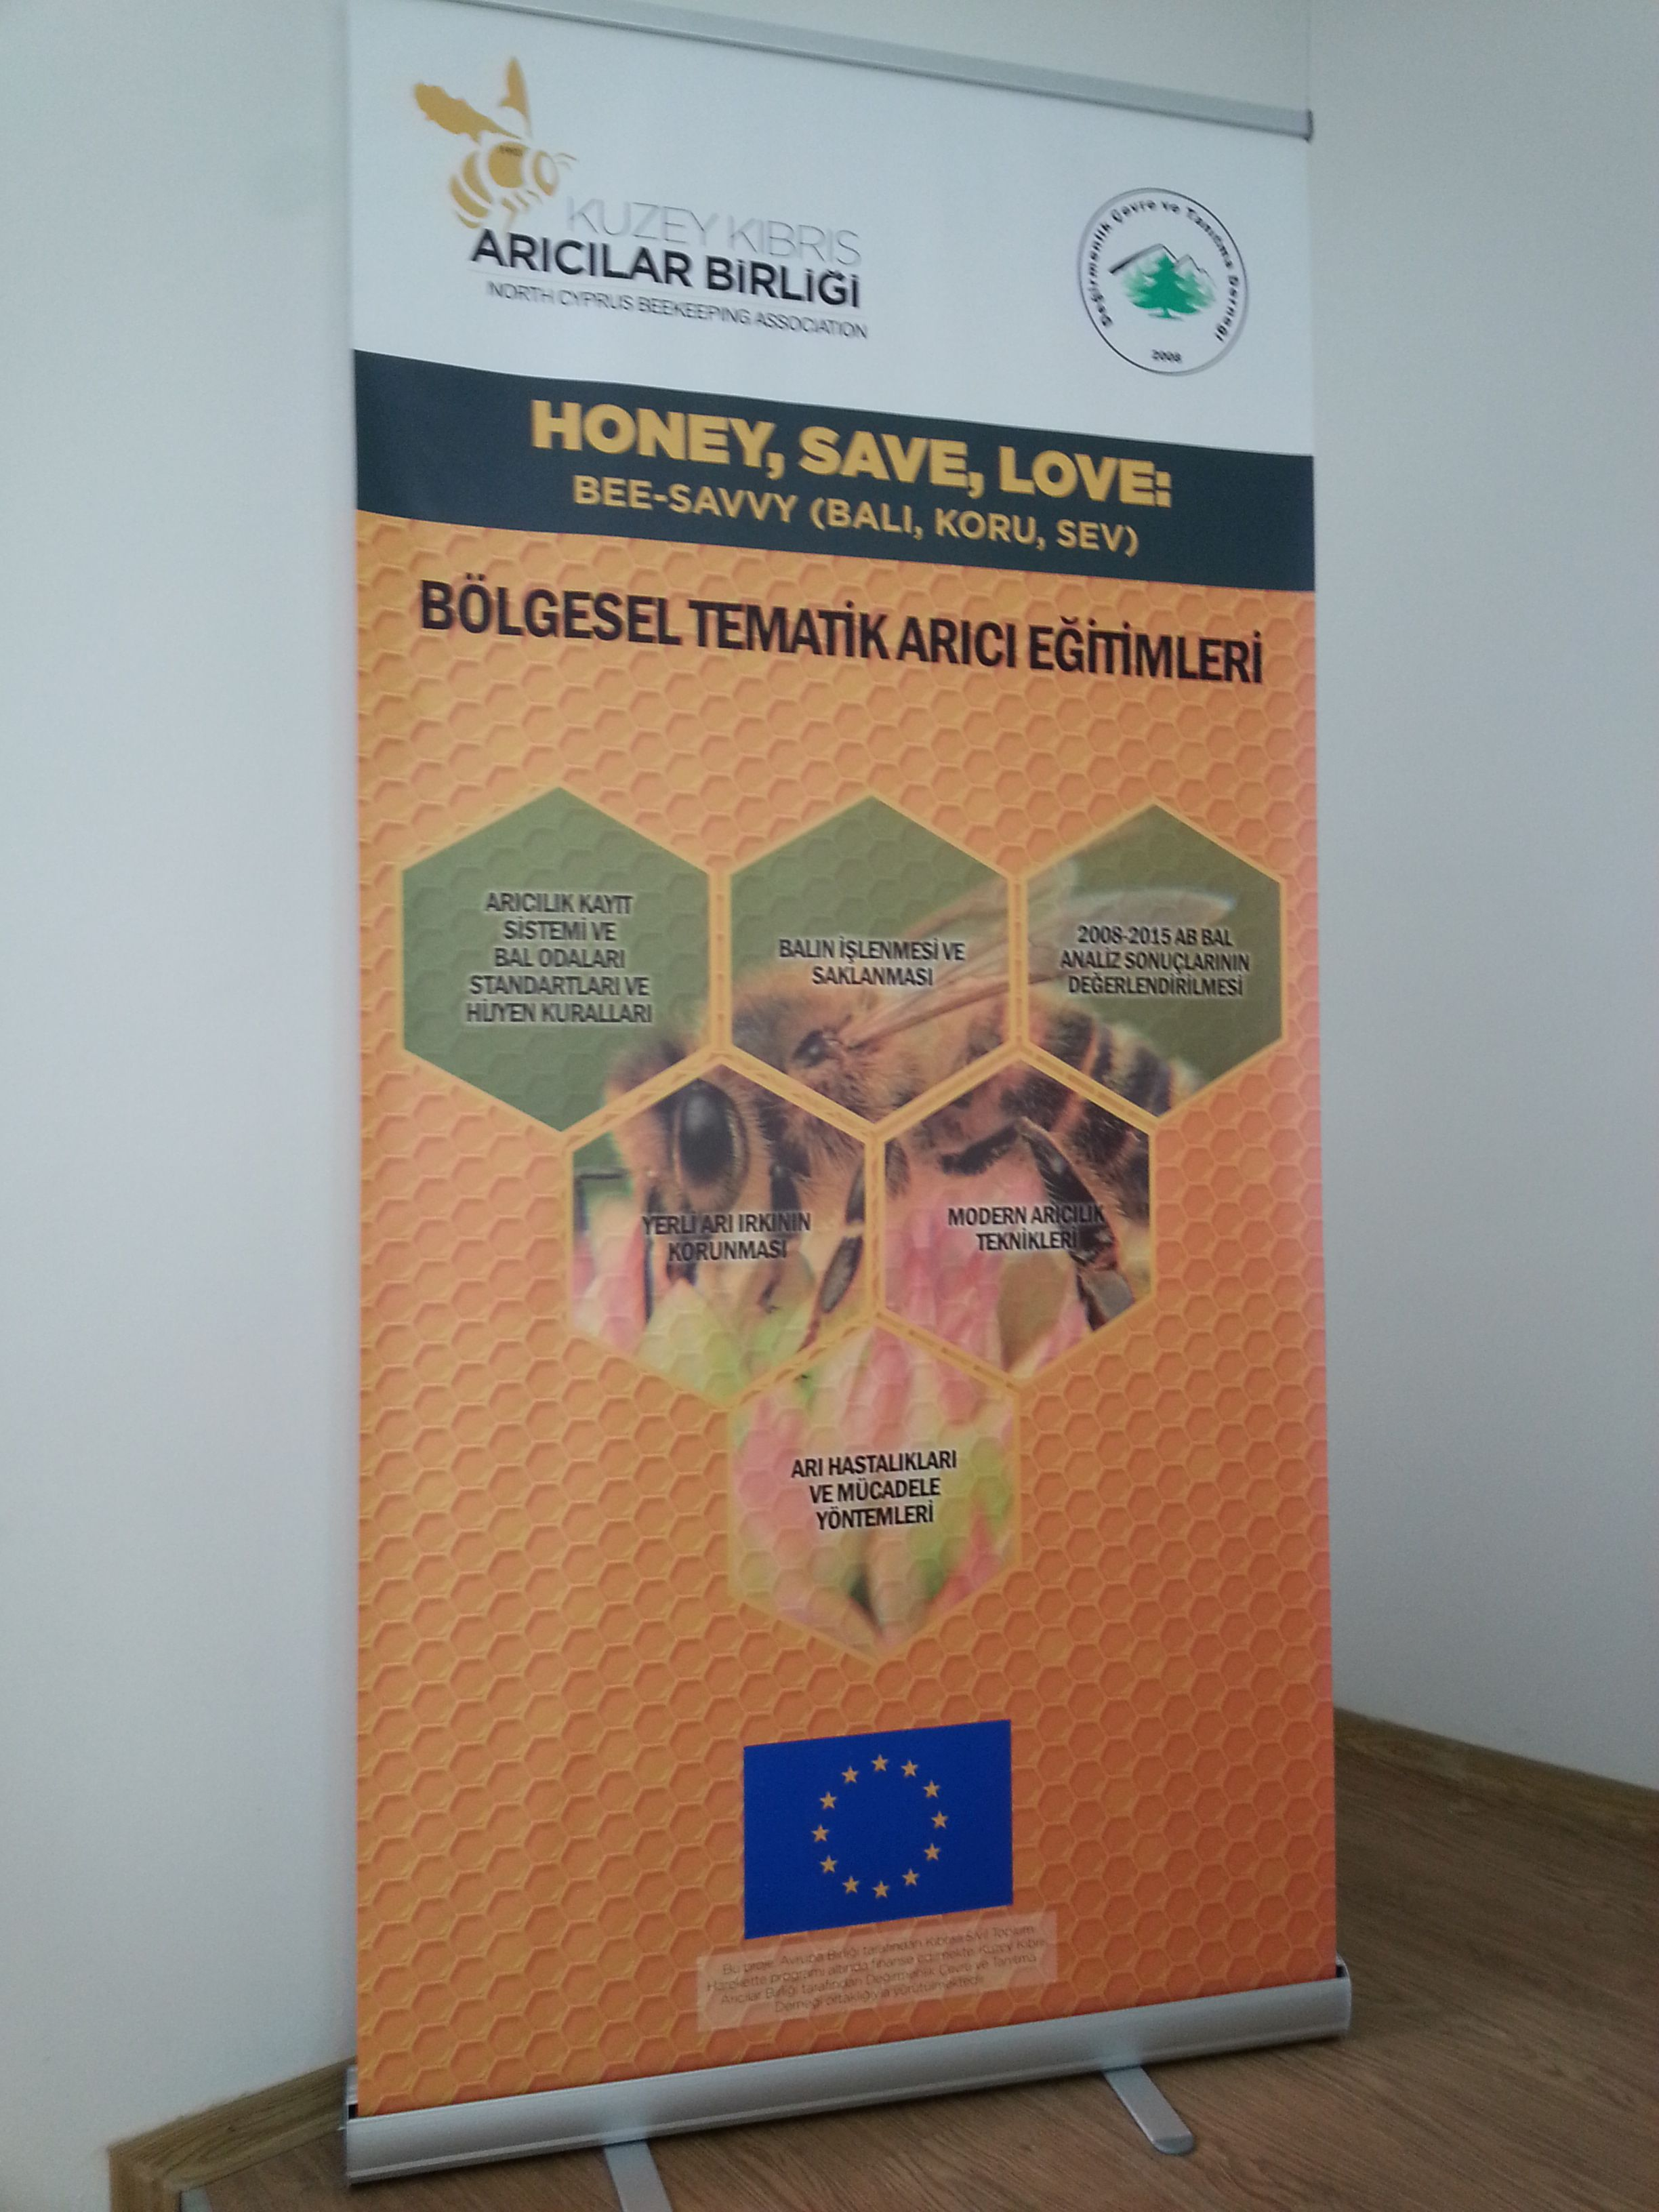 Academics from Near East University Faculty of Veterinary Medicine participated in the project on 'Conserve and Love Honey'